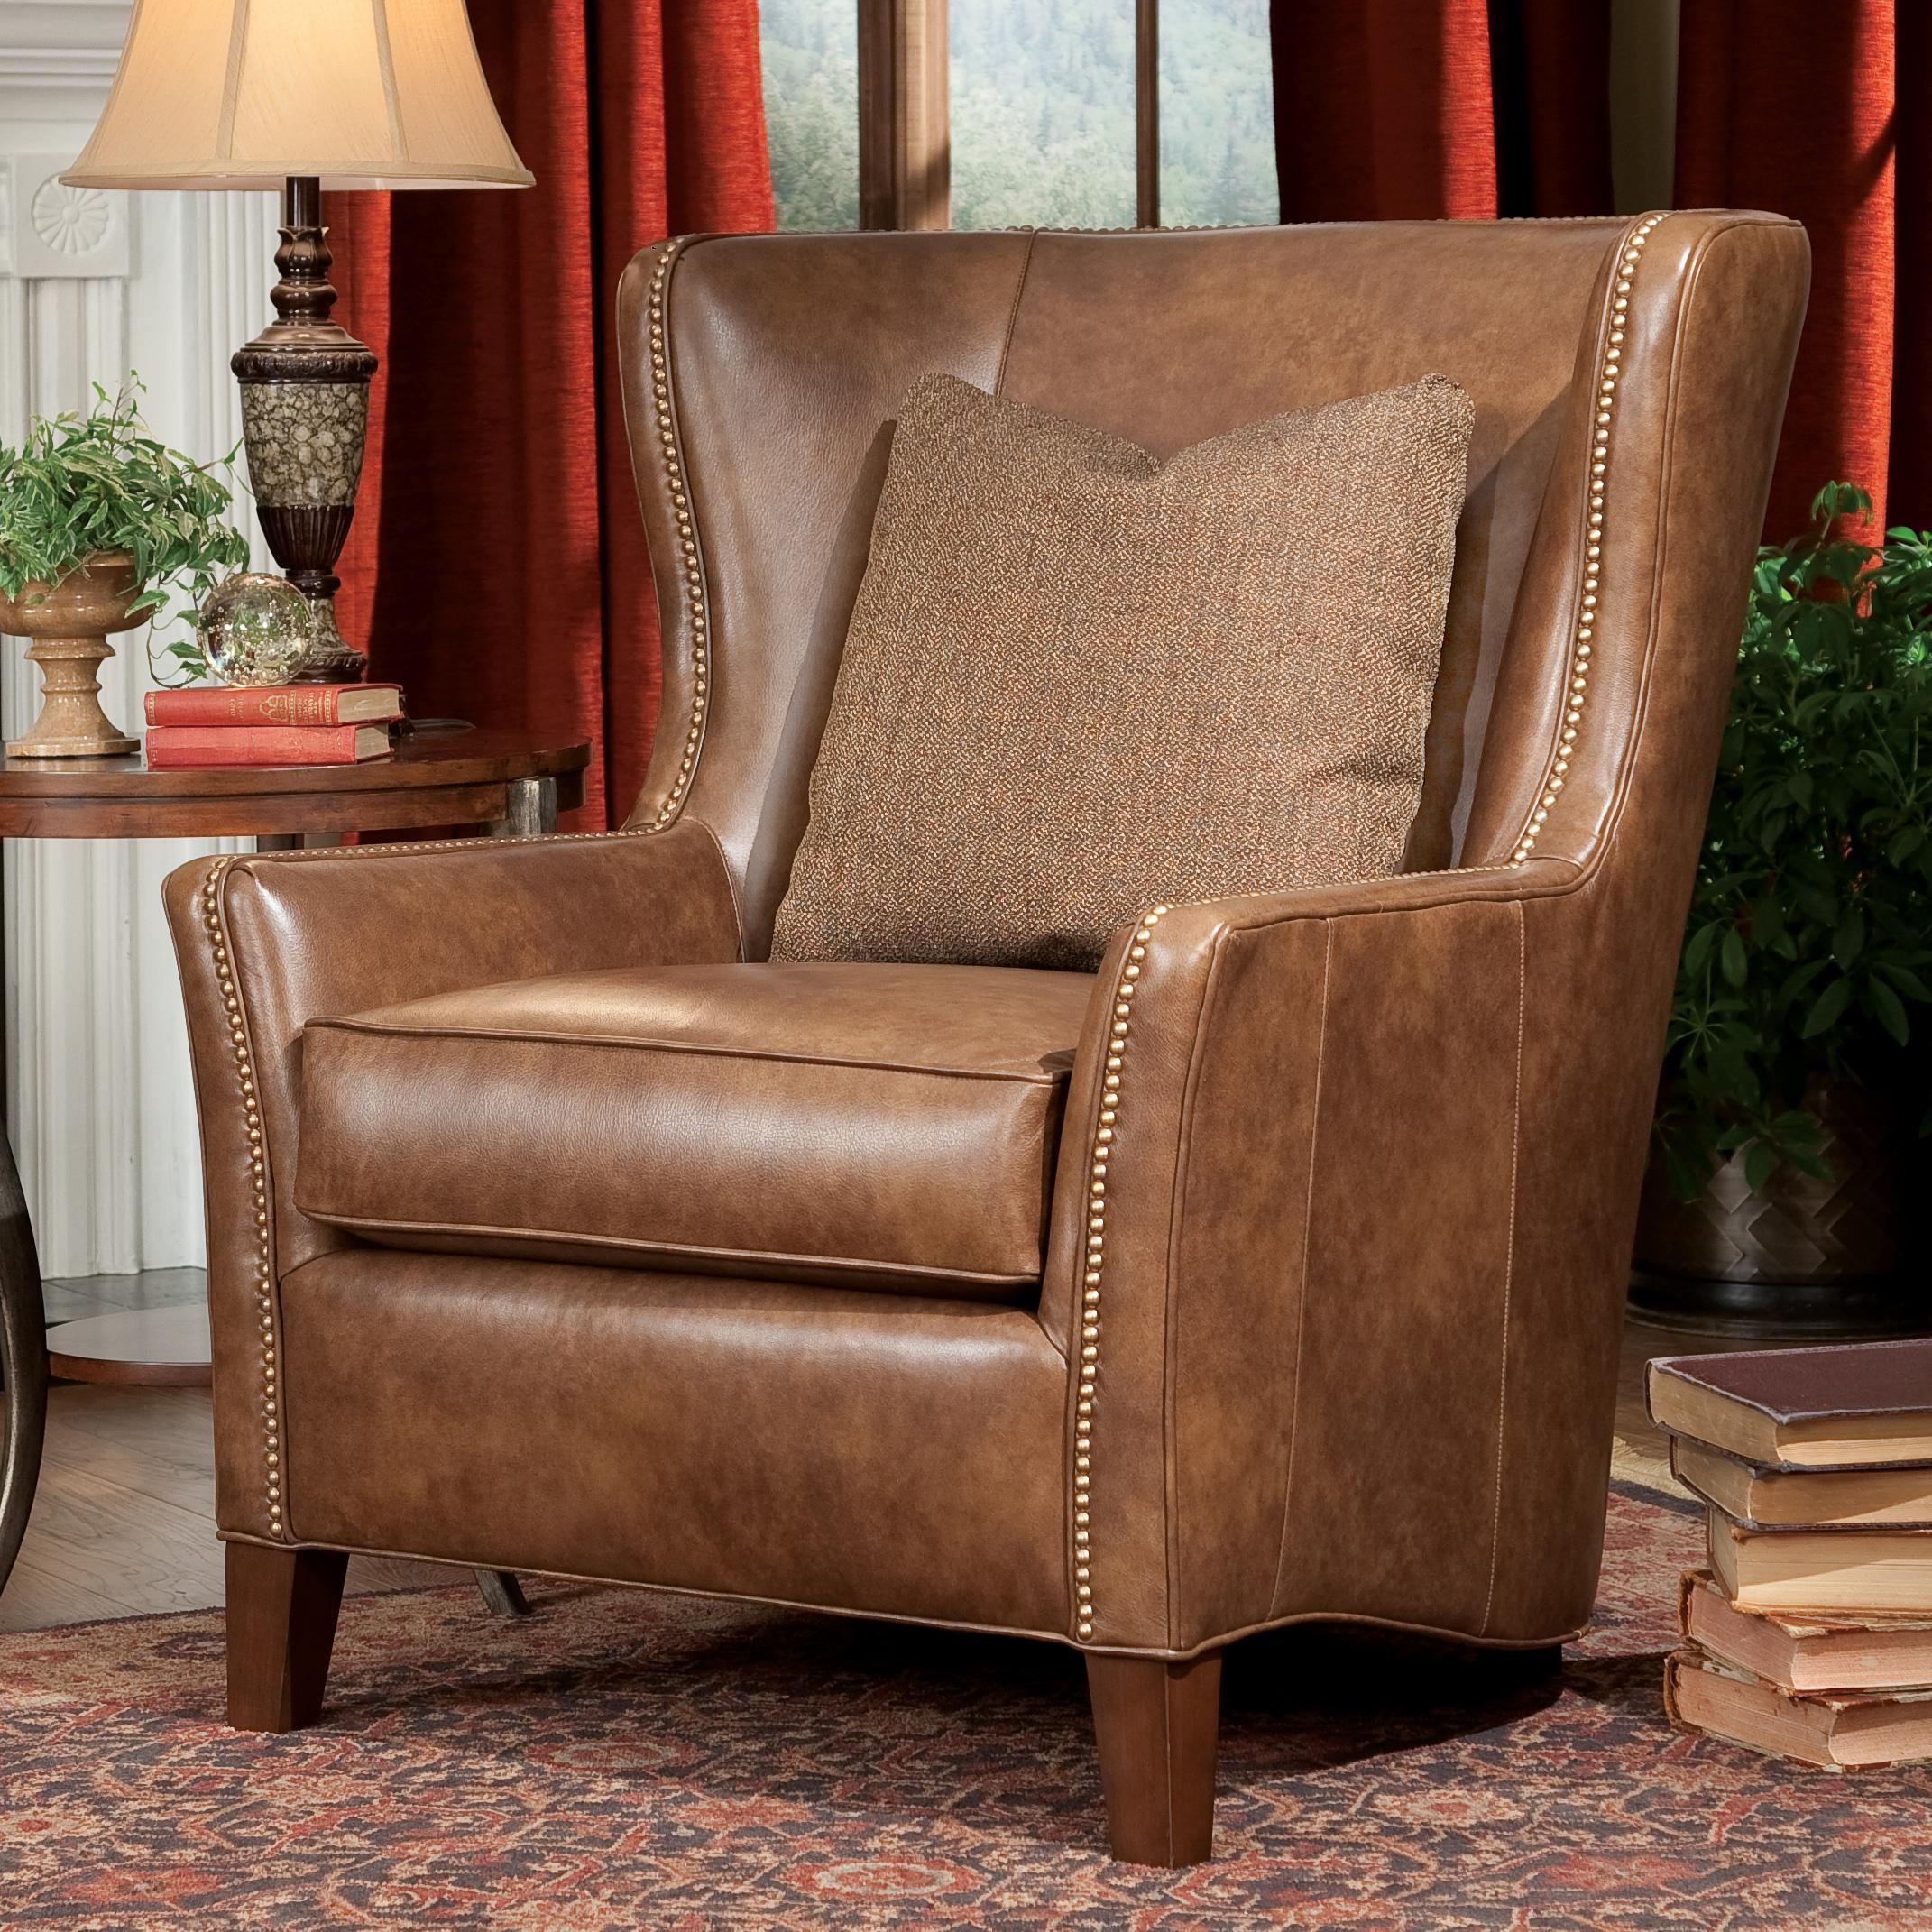 Upholstered wing chairs - Contemporary Wingback Chair With Track Arms